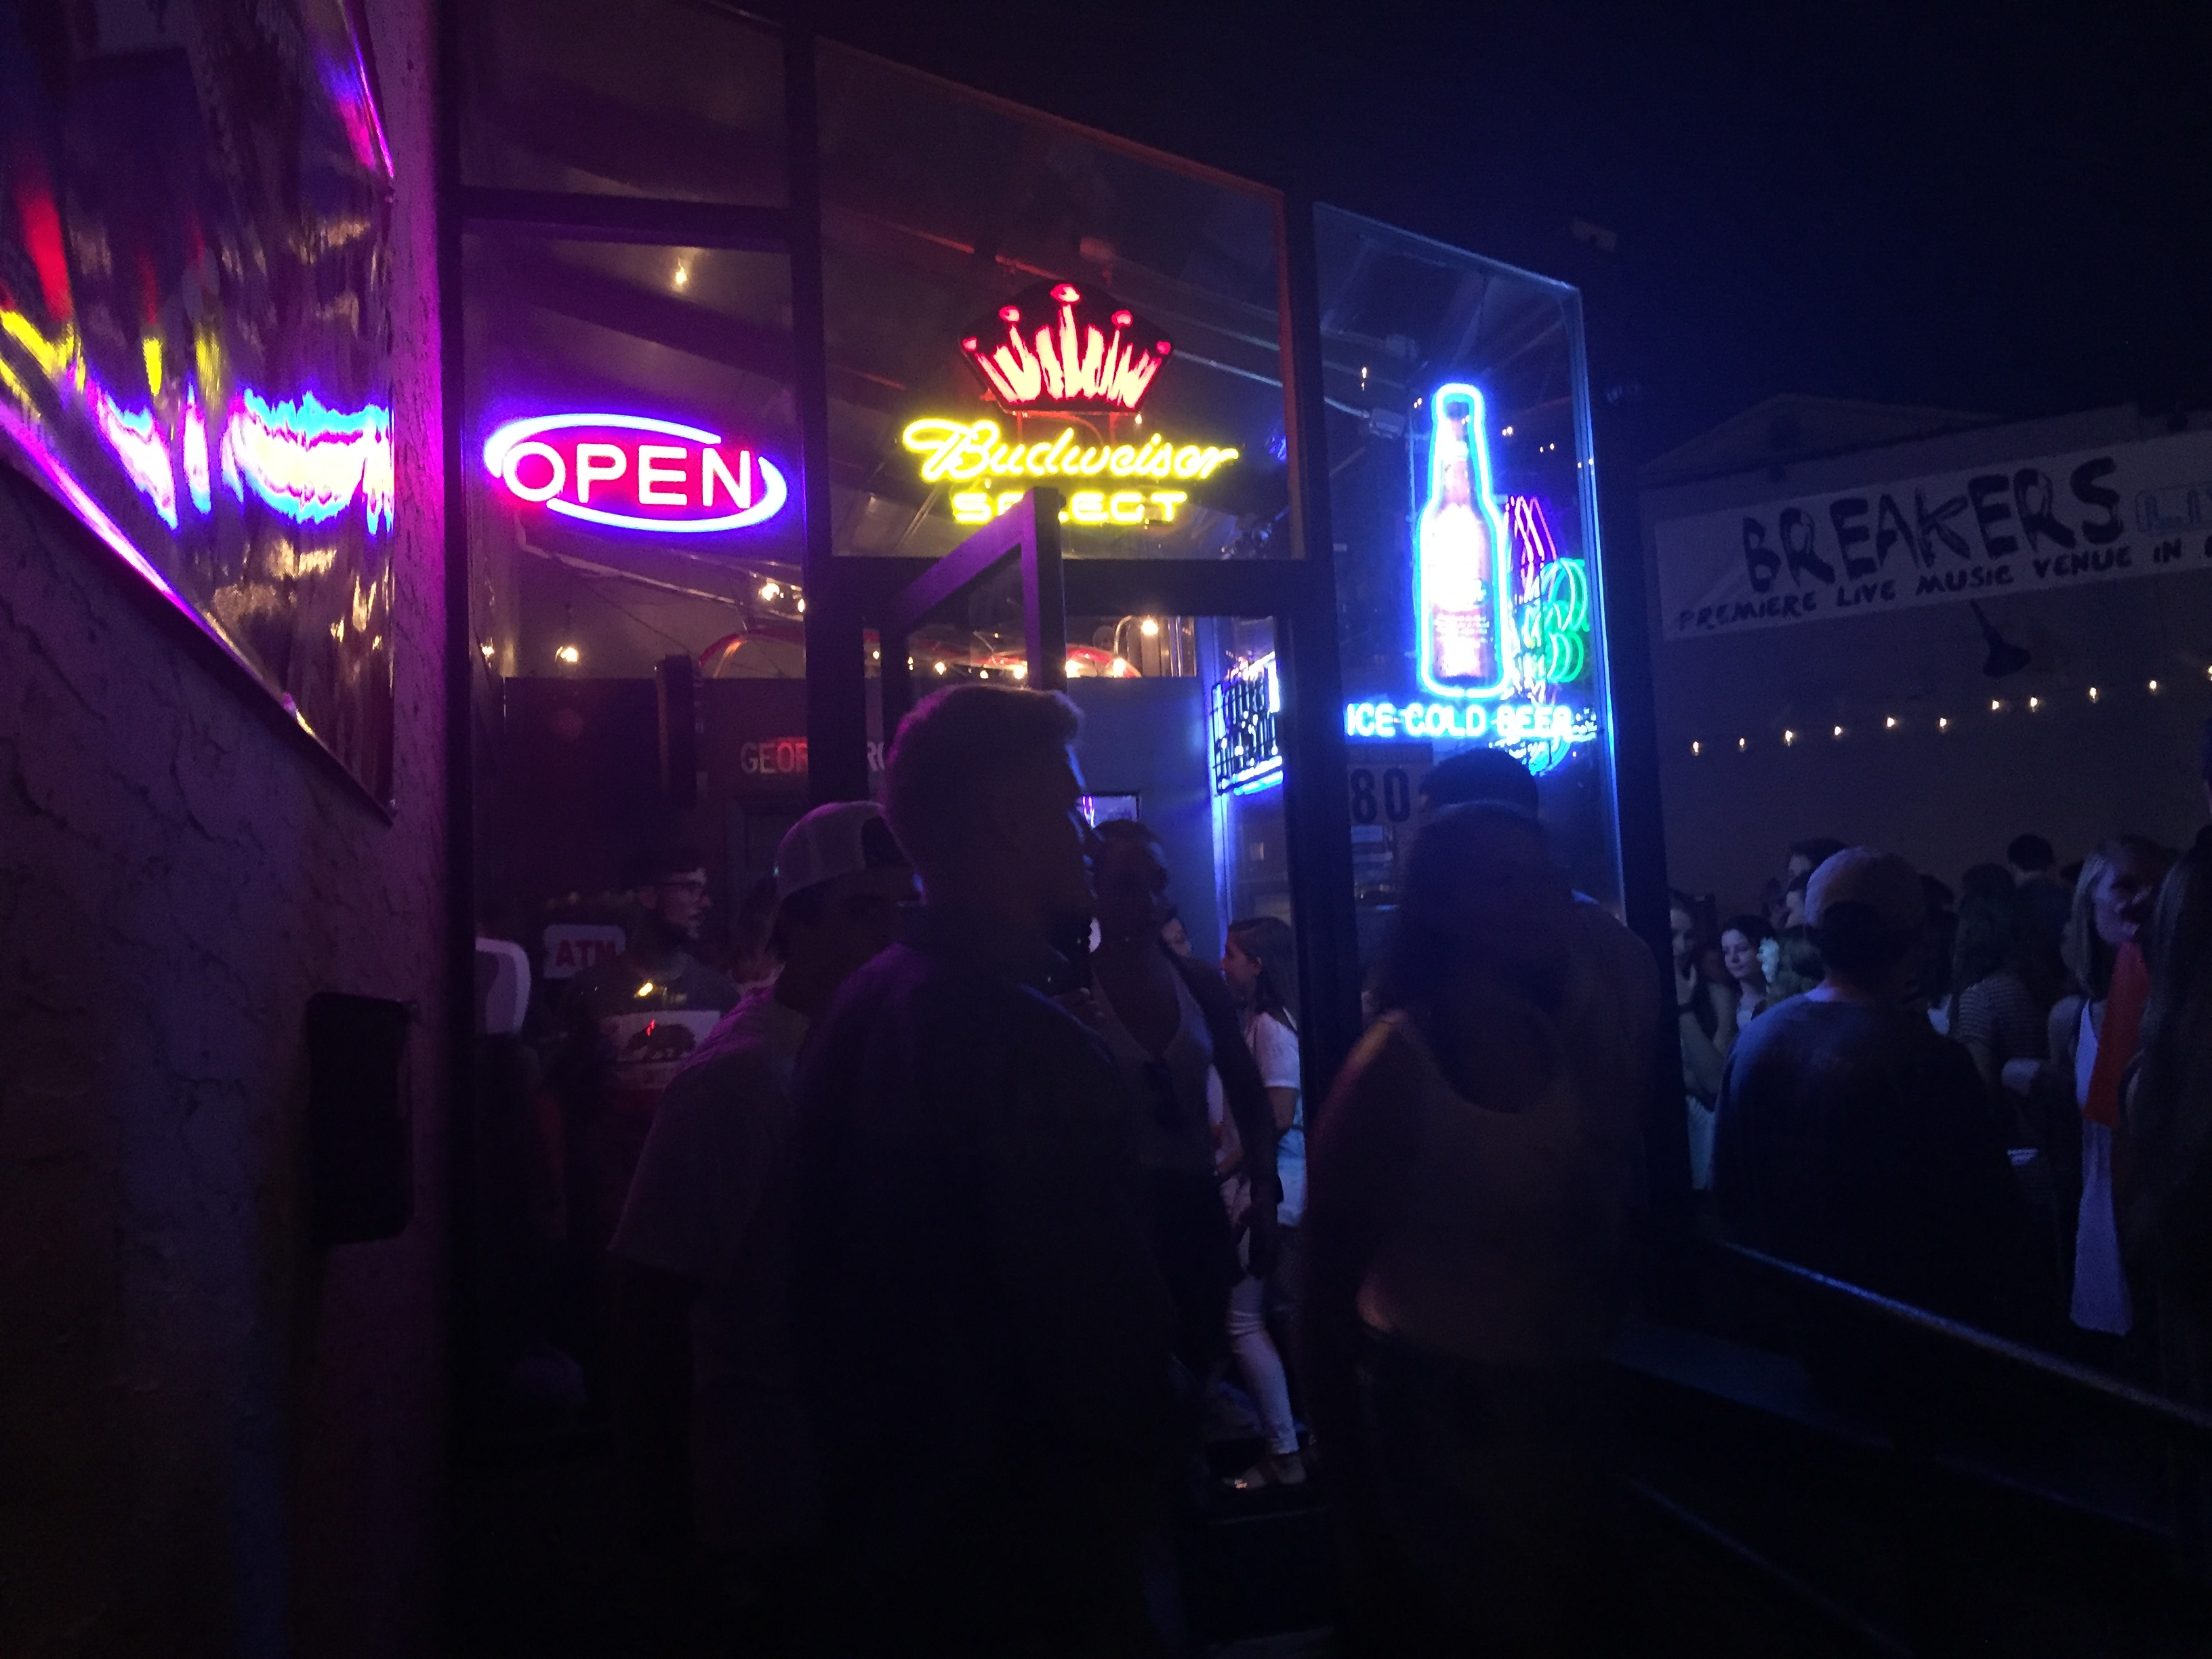 Nightlife in Five Points